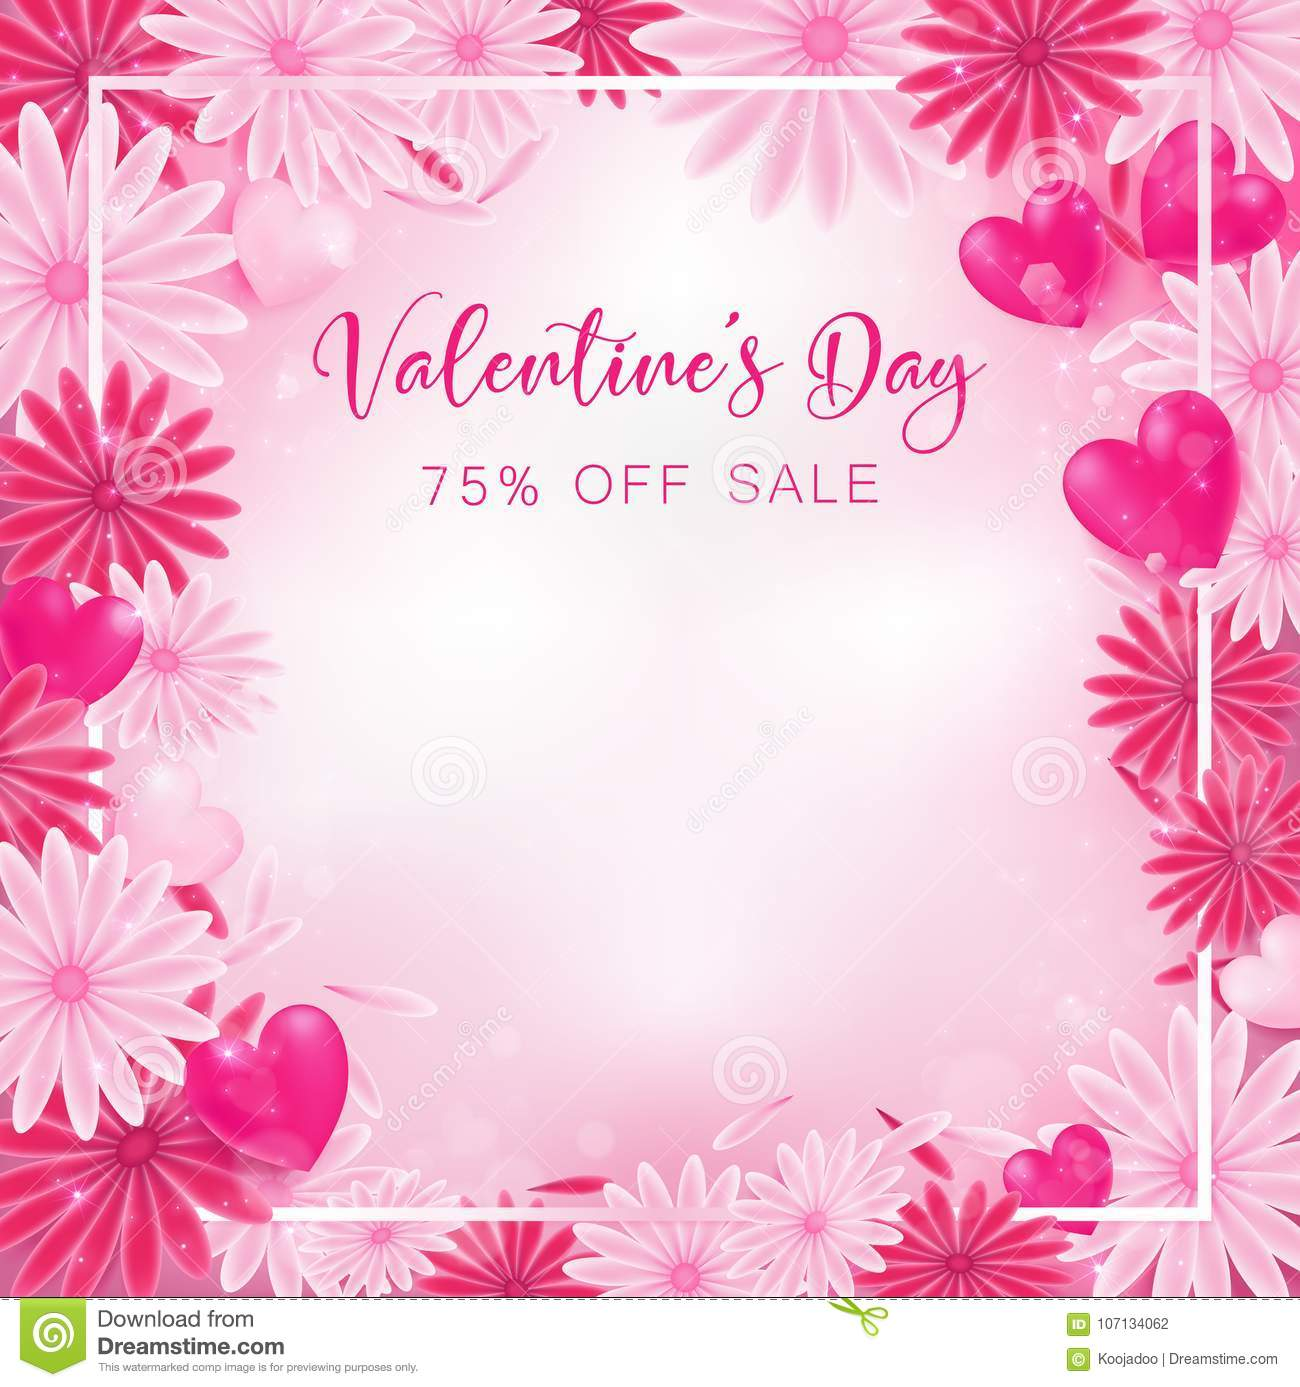 Valentine floral invitation is decorate in red and pink stock vector valentine floral invitation is decorate in red and pink color as flower blooming border is pearl pink along with petals are dropped on beside usage in stopboris Gallery